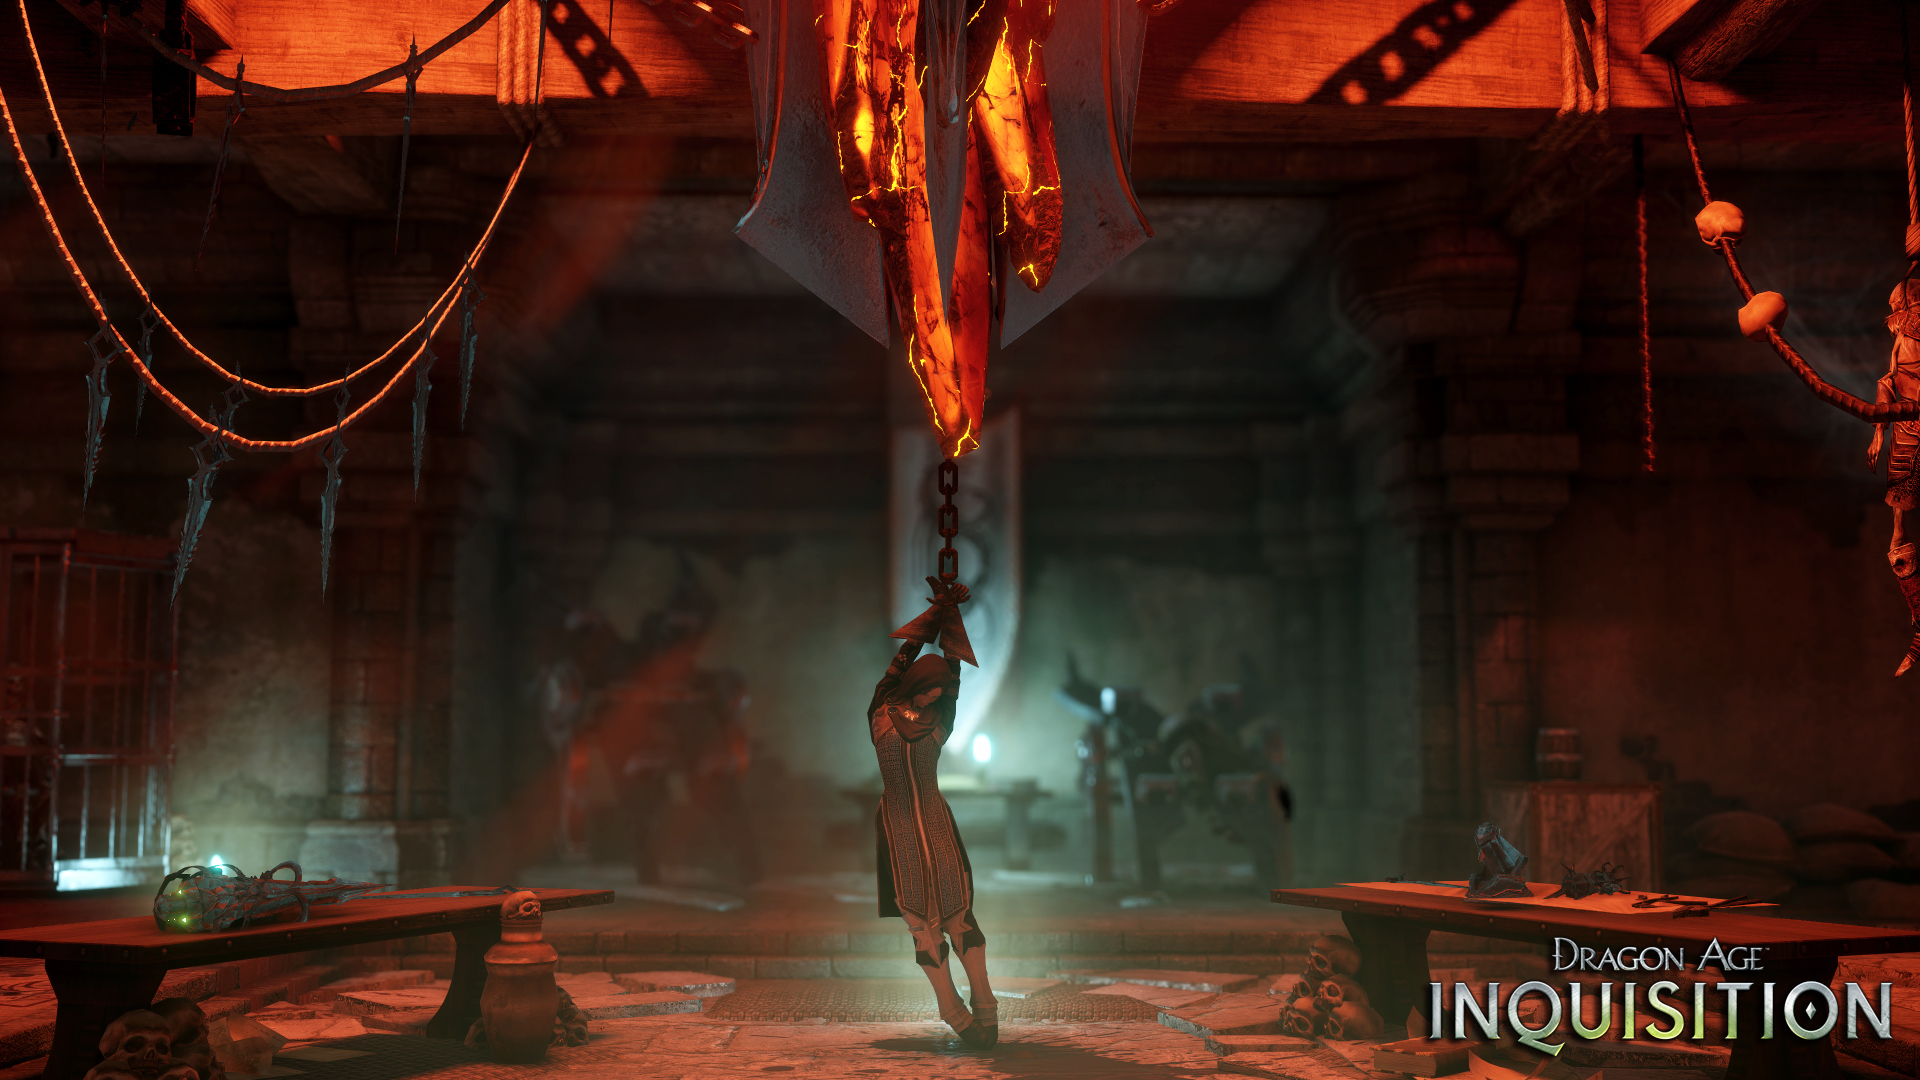 Microsoft Fall Wallpaper Dragon Age Inquisition E3 Trailers And Screenshots Rpg Site